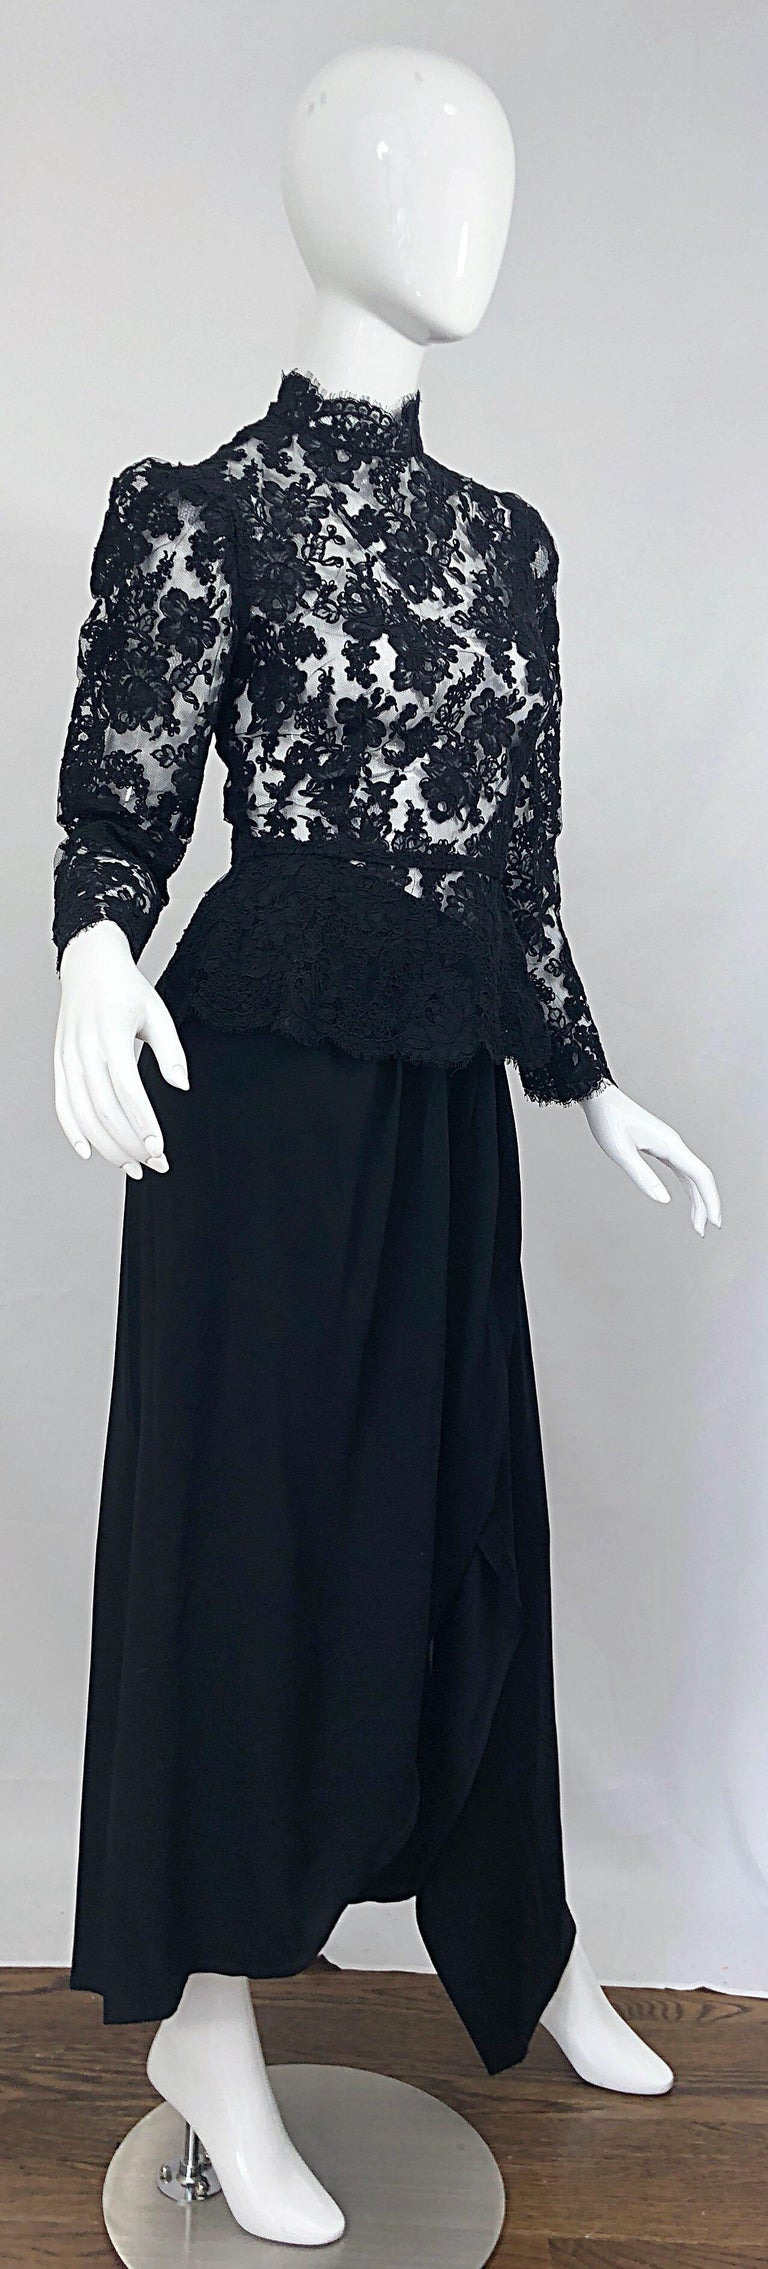 Vintage Vicky Tiel Couture 1980s Black Lace Victorian Top + Asymmetrical Skirt For Sale 1